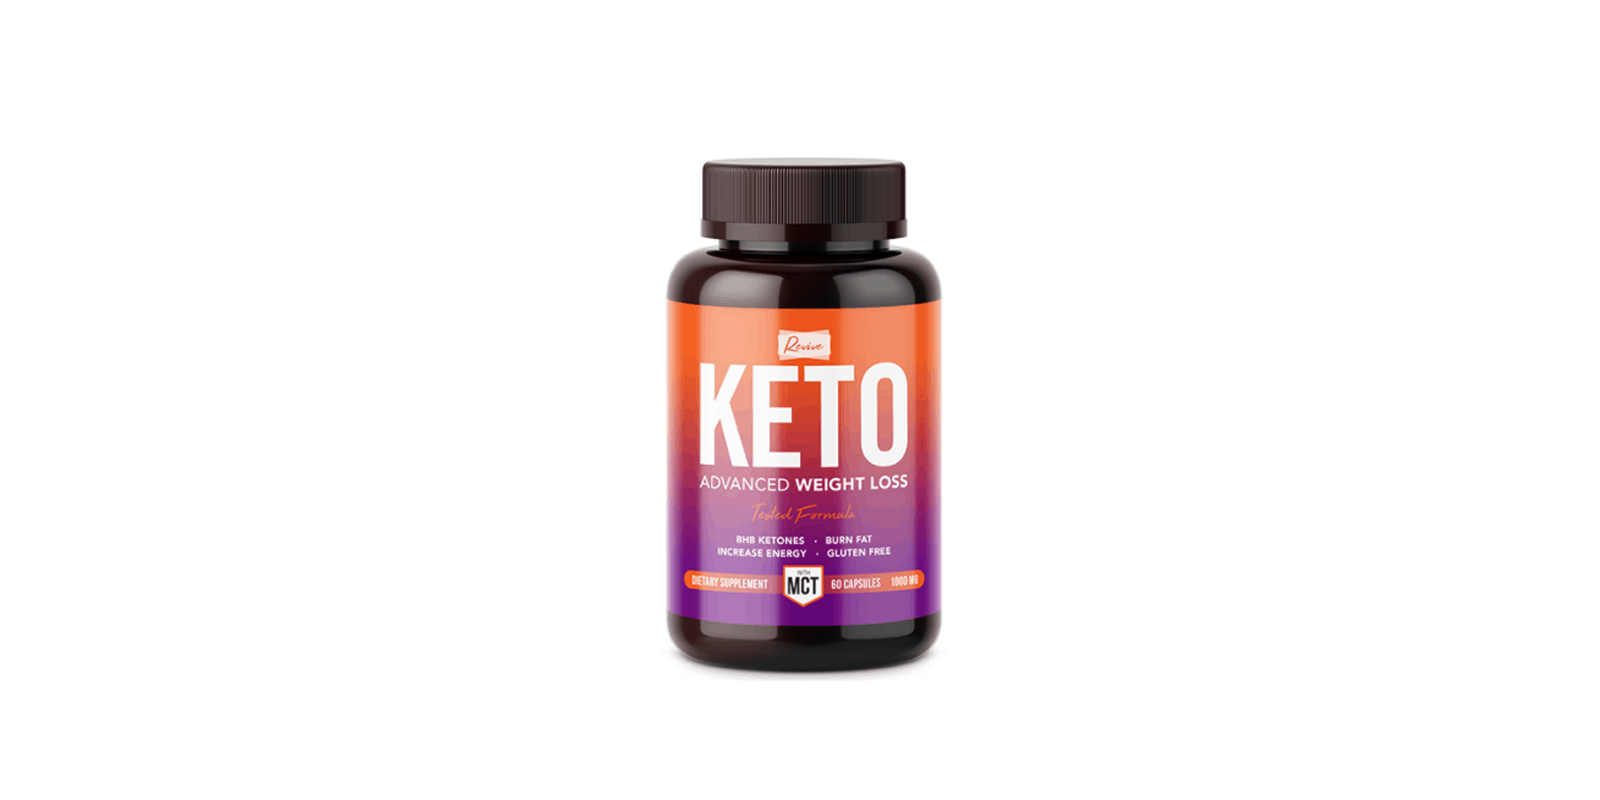 Revive Keto reviews